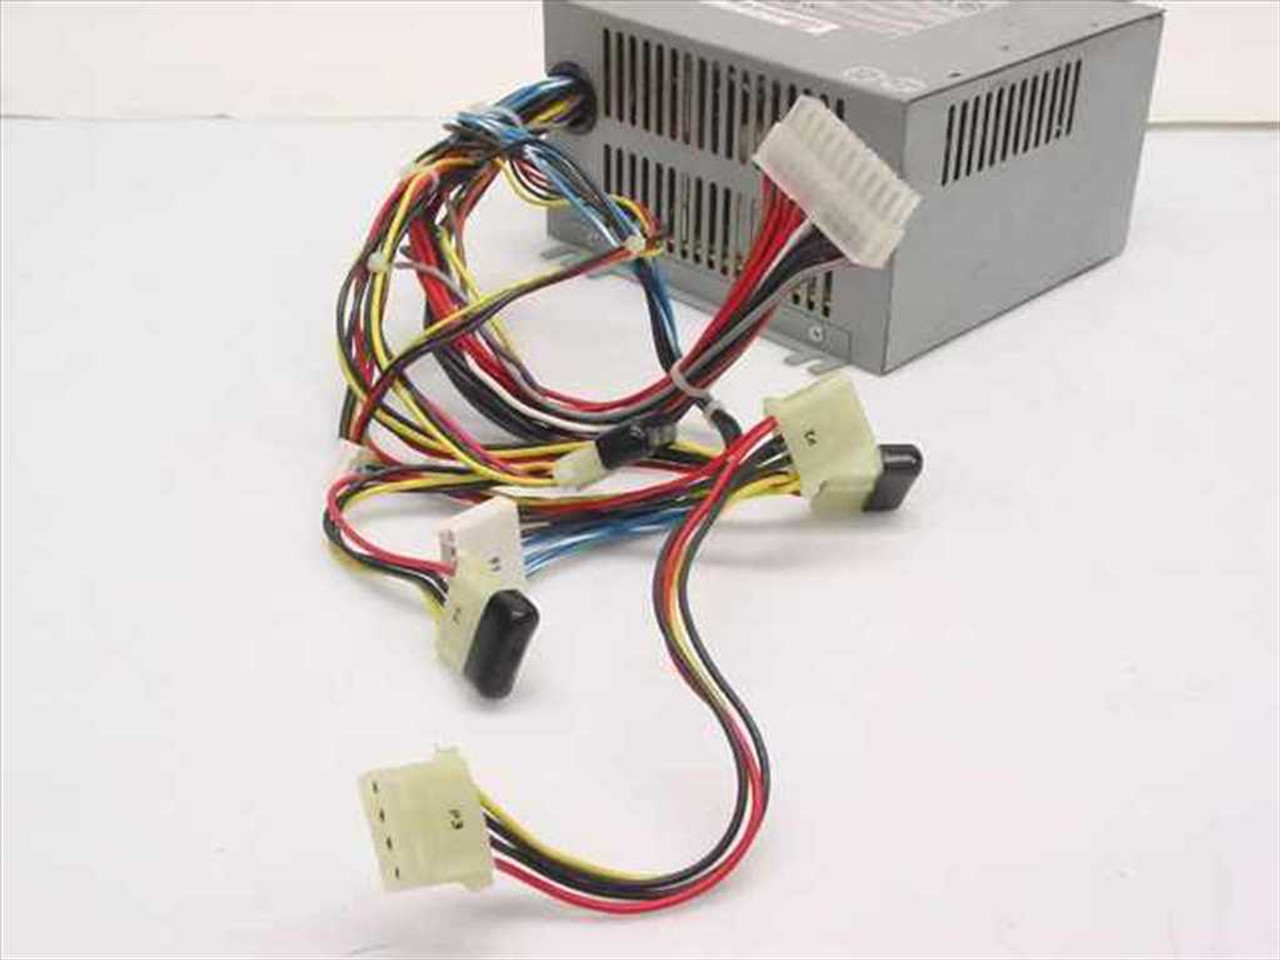 dell repair diagram dell 87346 200 w power supply ps 5201 1d1a recycledgoods com eaton mcc wiring  [ 1024 x 768 Pixel ]